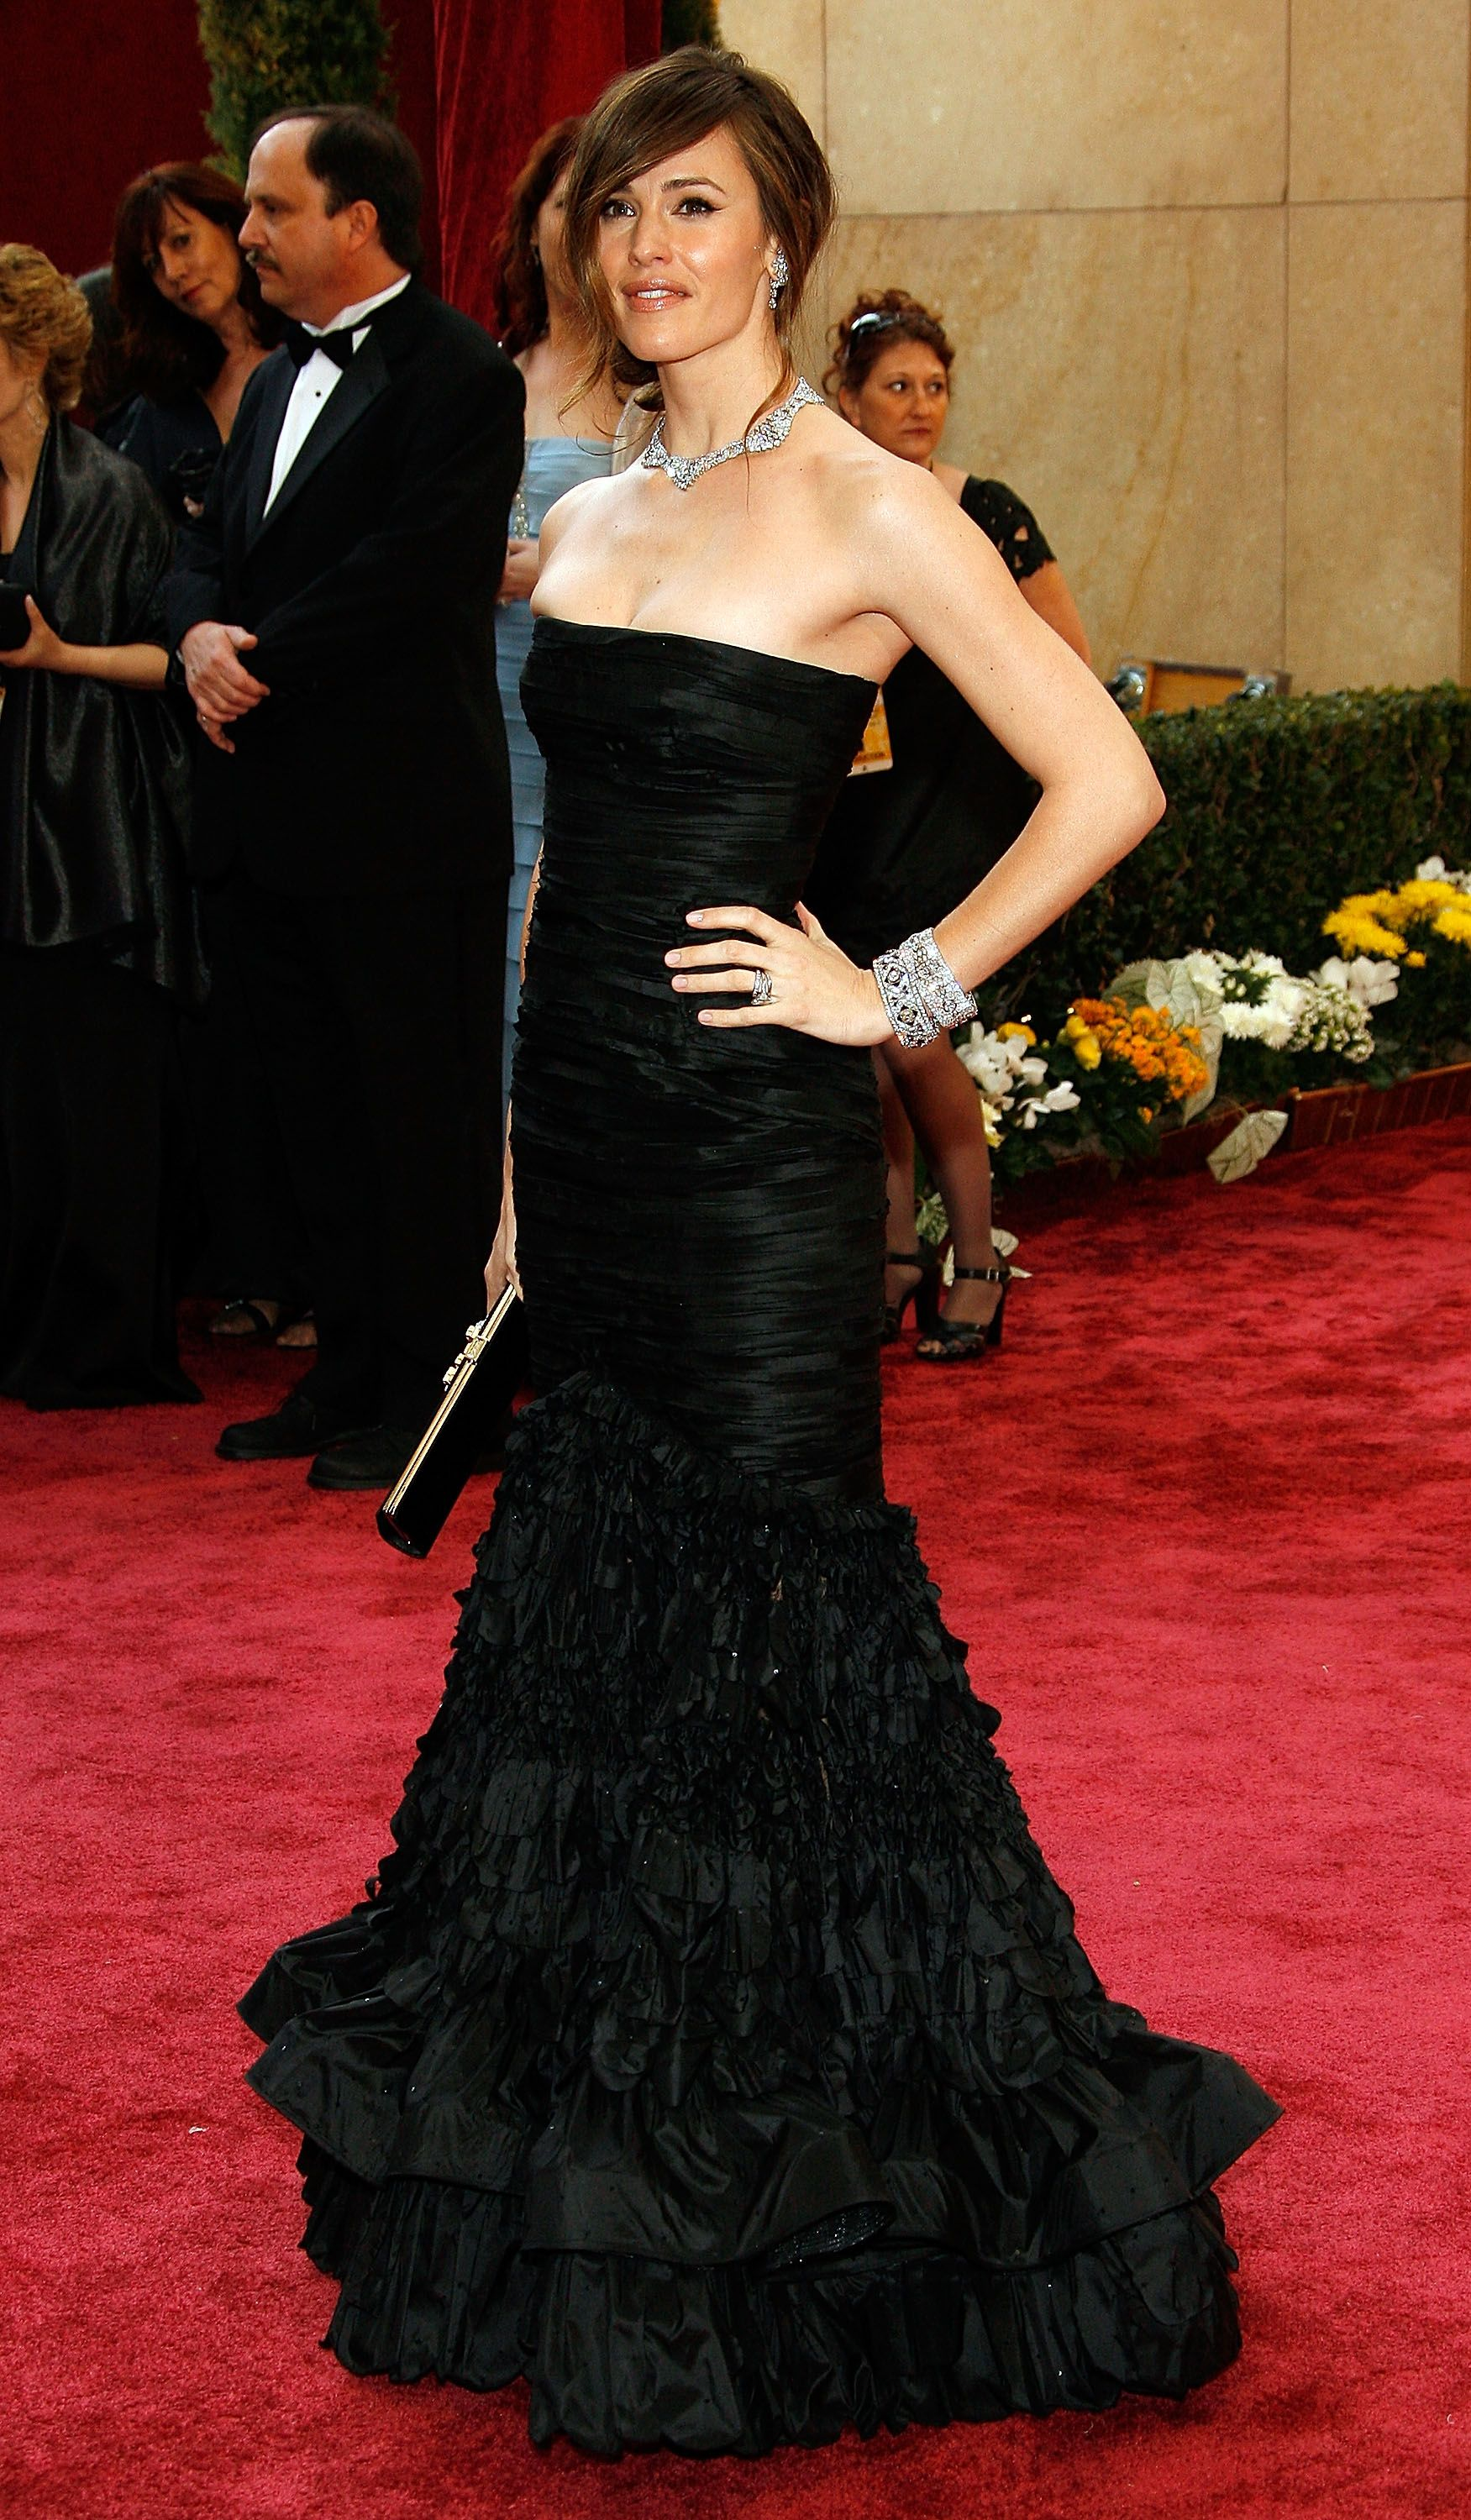 February 24, 2008 In Oscar de la Renta at the 80th annual Academy Awards in Hollywood.